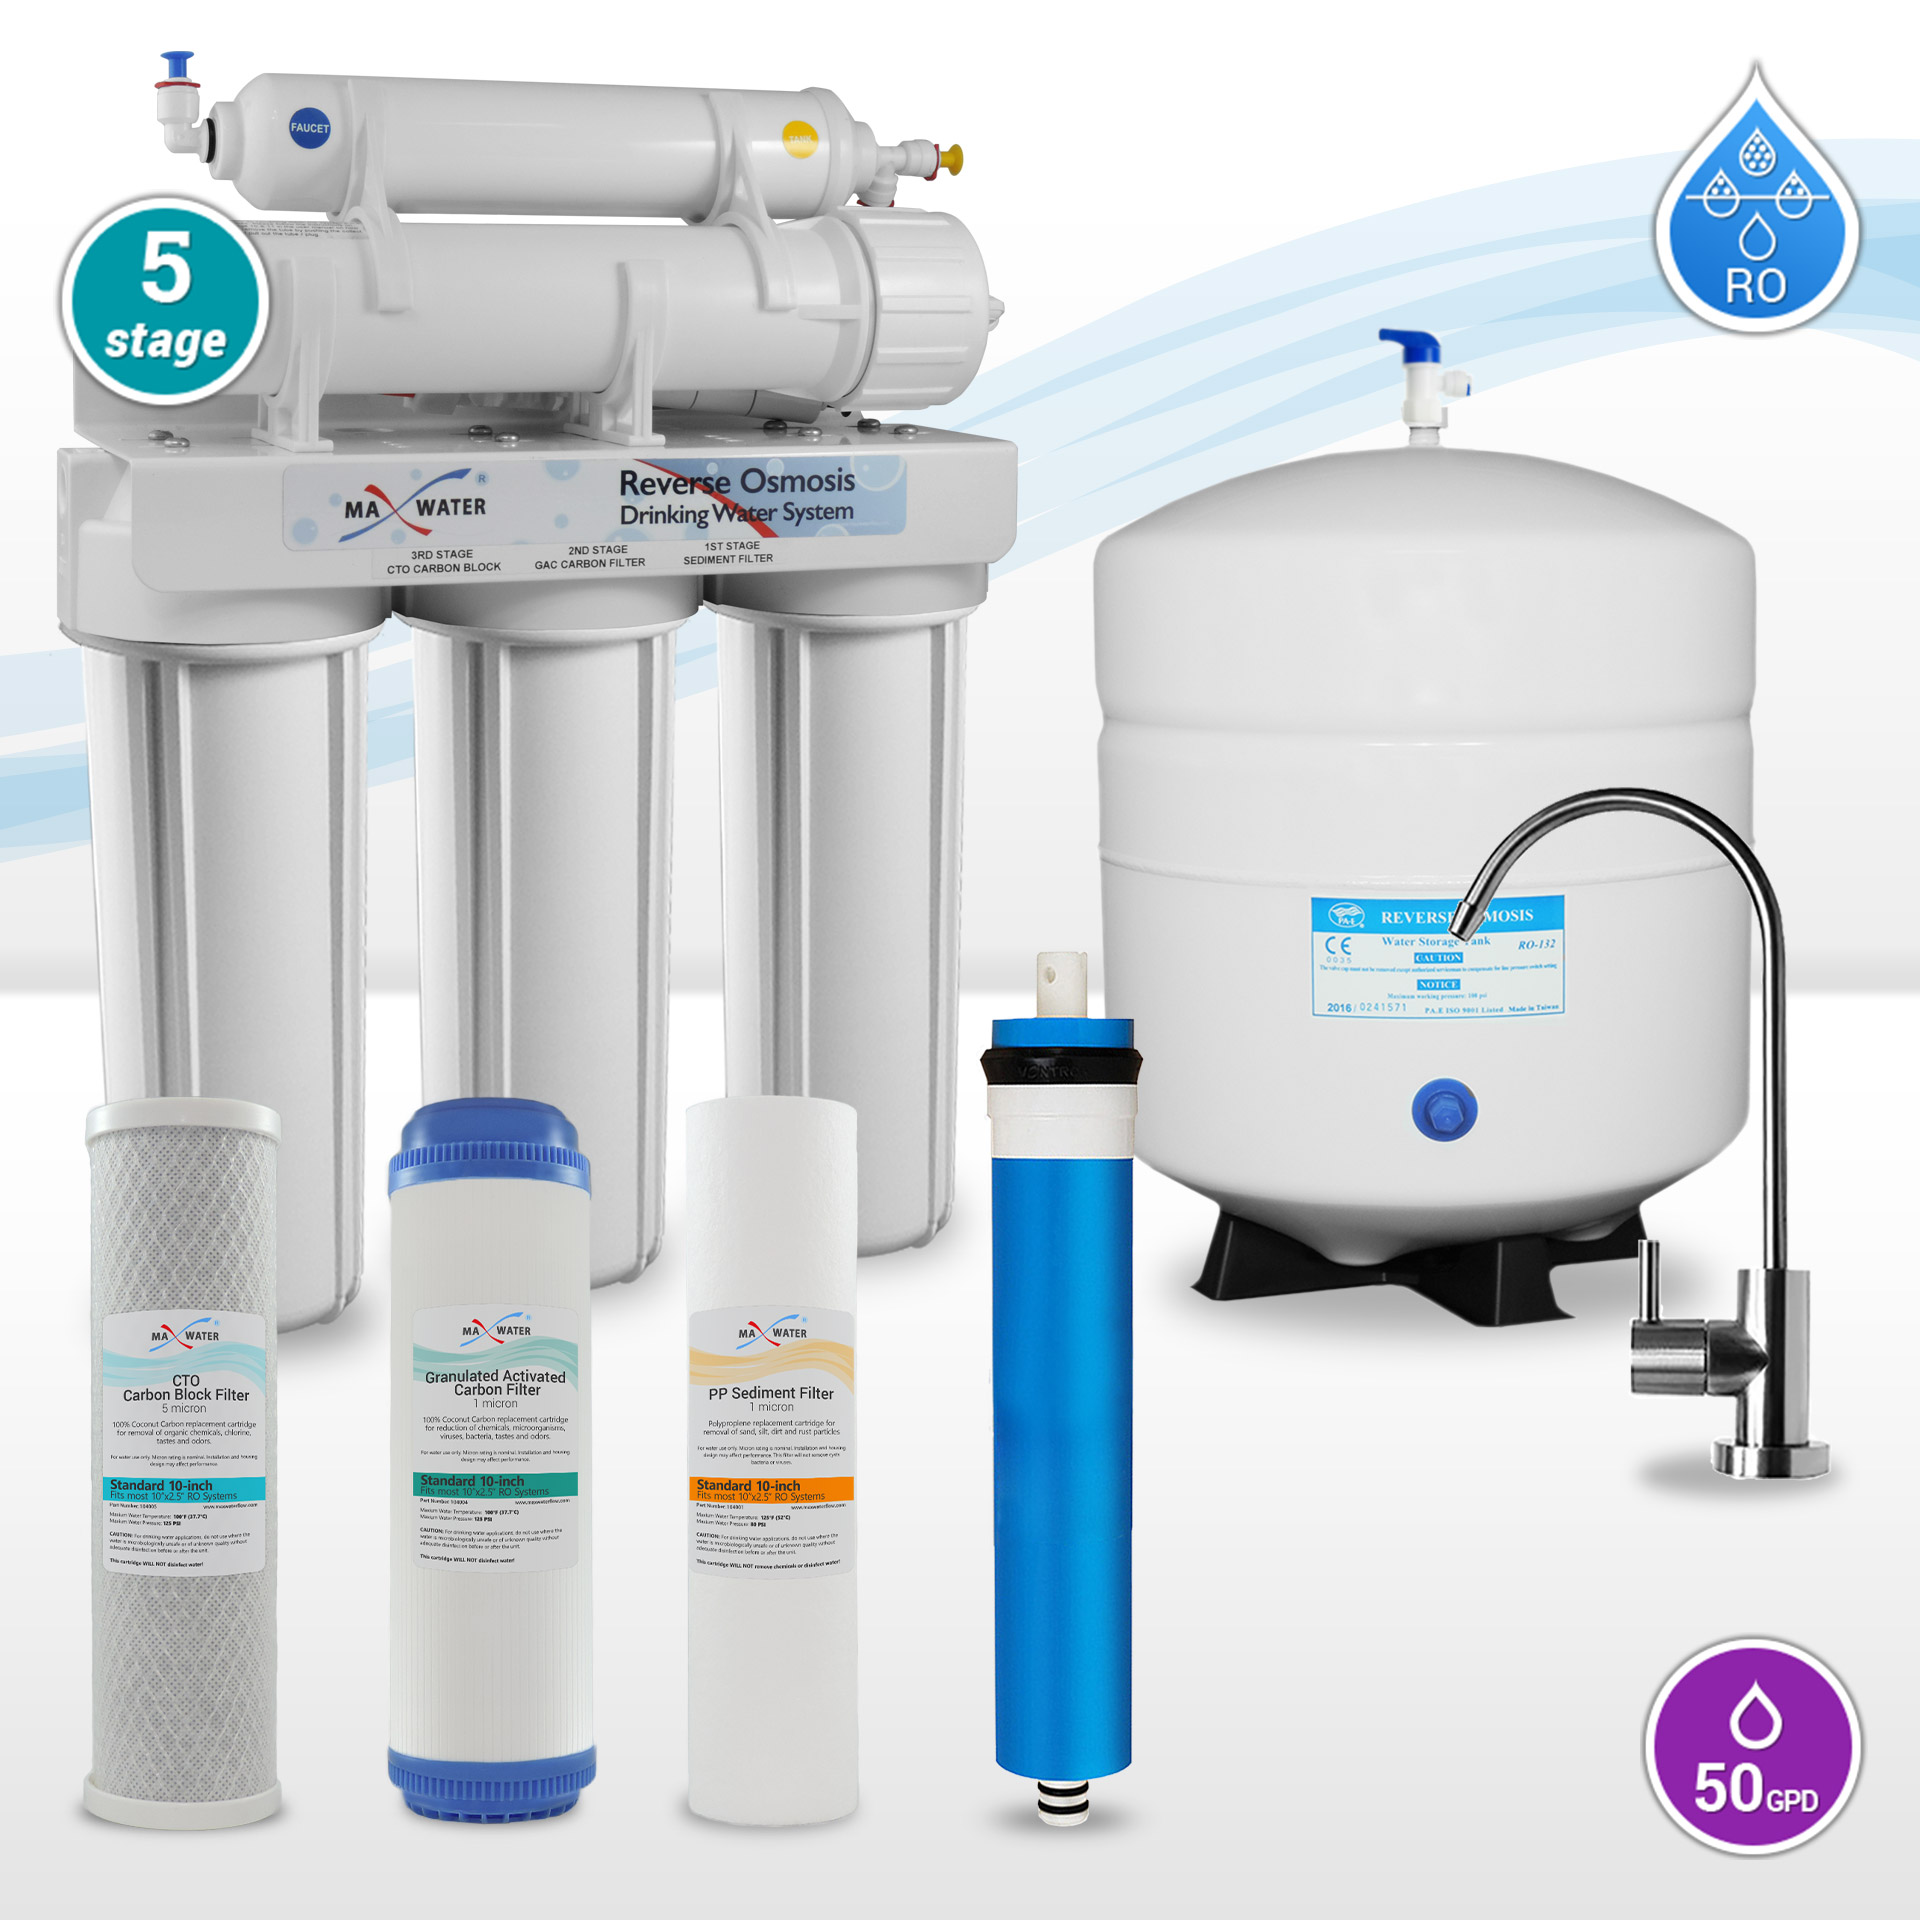 5 Stage Home Reverse Osmosis Systems